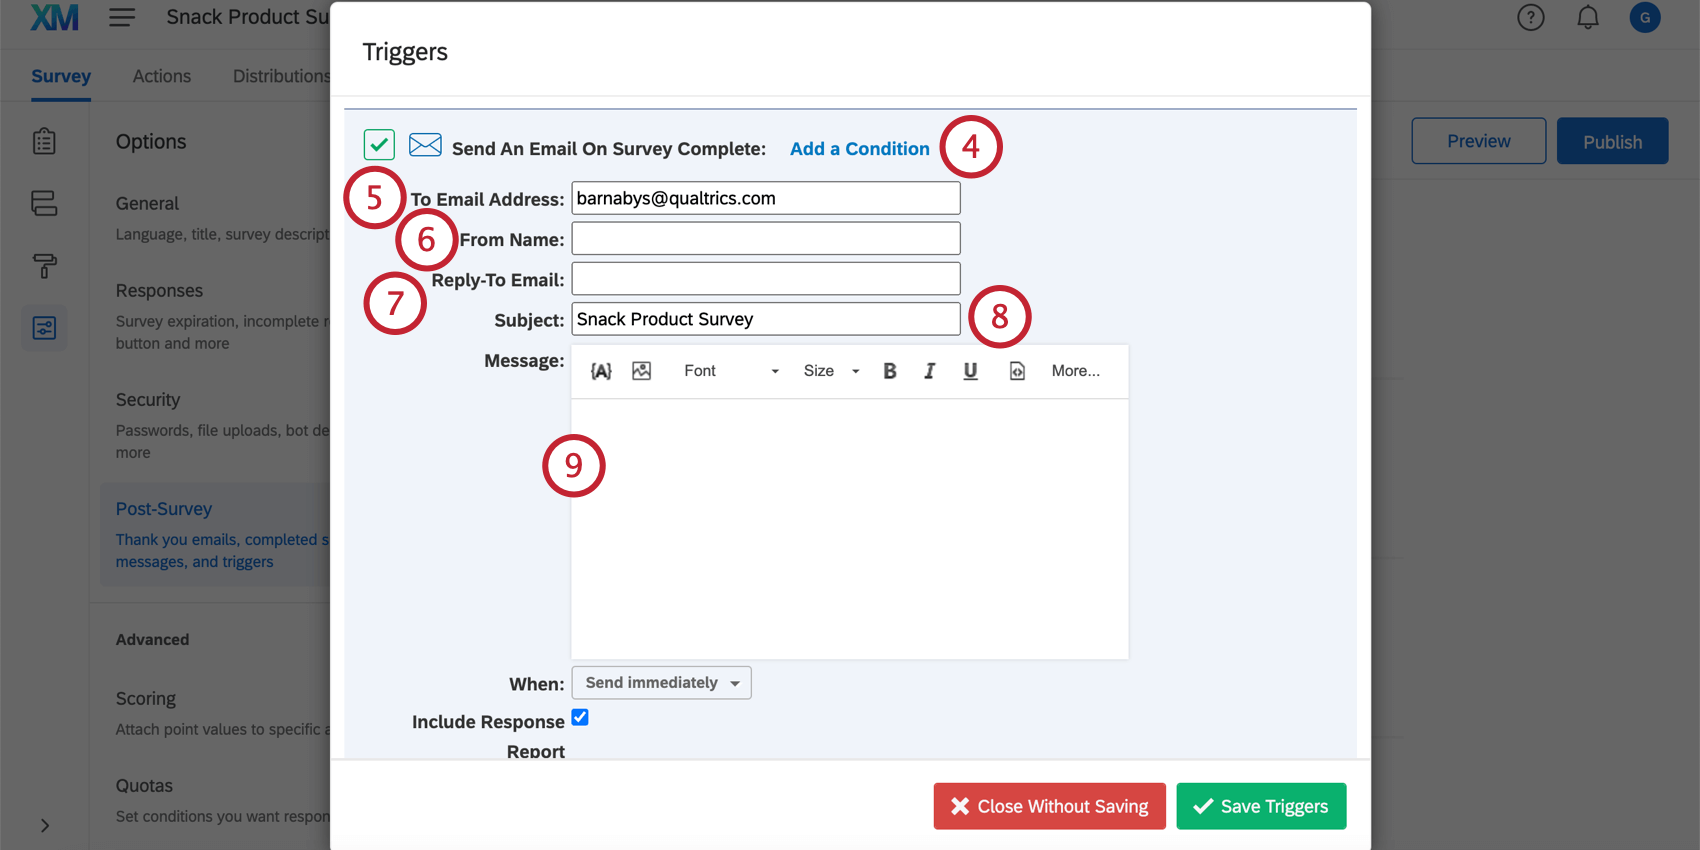 Options at the top of the email trigger